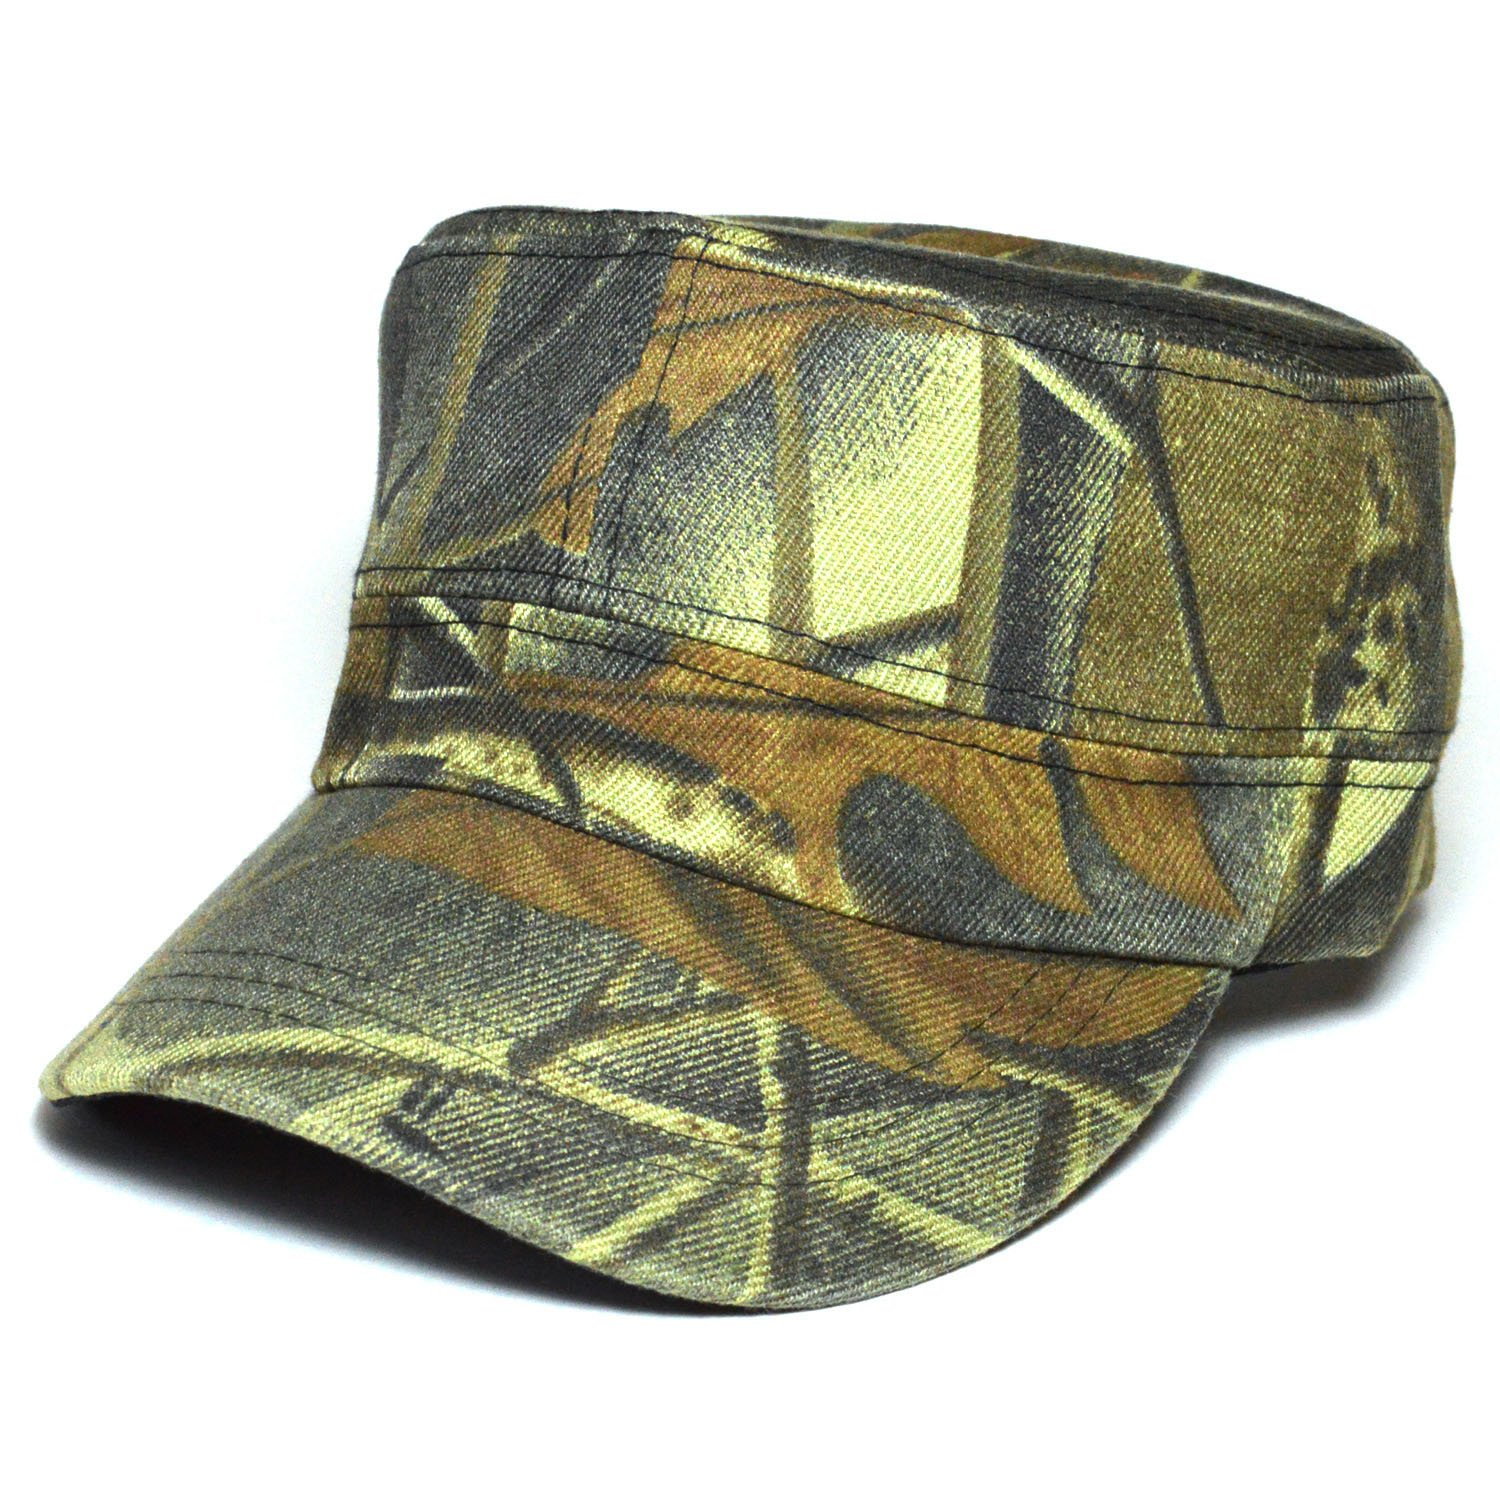 Tactical Military low profile baseball Patrol Cap Hat fidel military cadet  Hats at Amazon Men s Clothing store  88e43650875